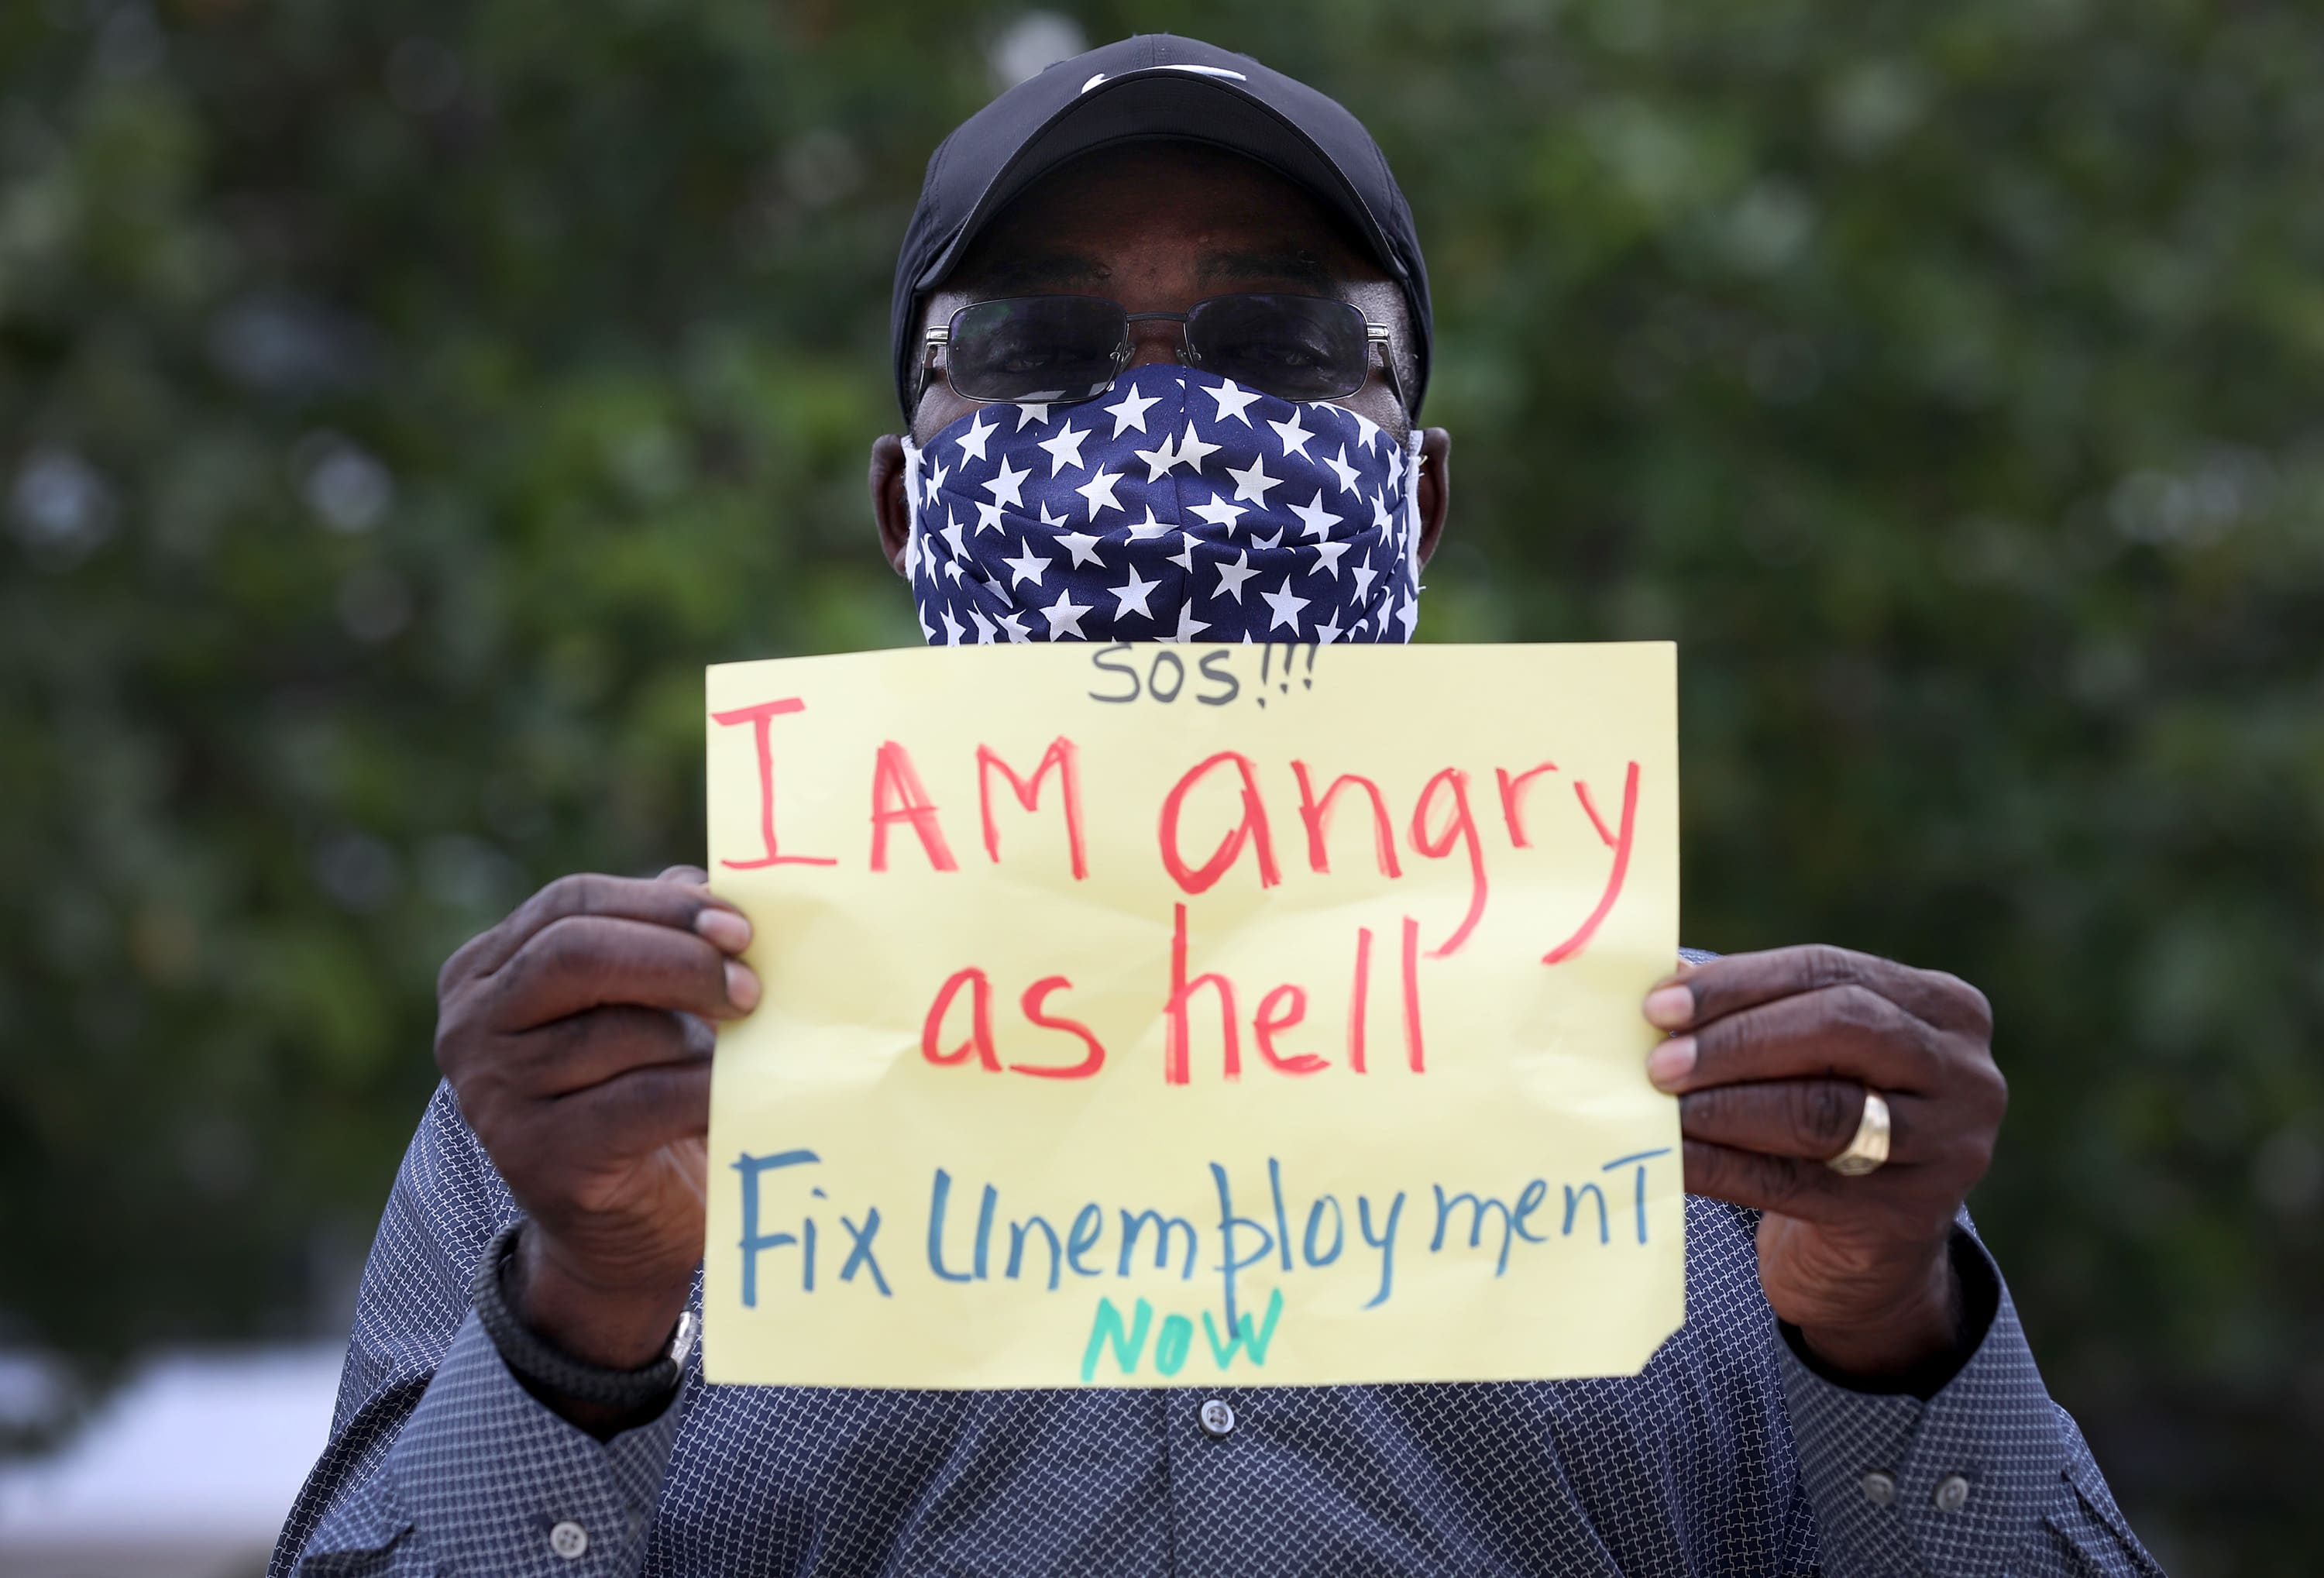 Staggering jobless claims persist; global deaths near 450,000